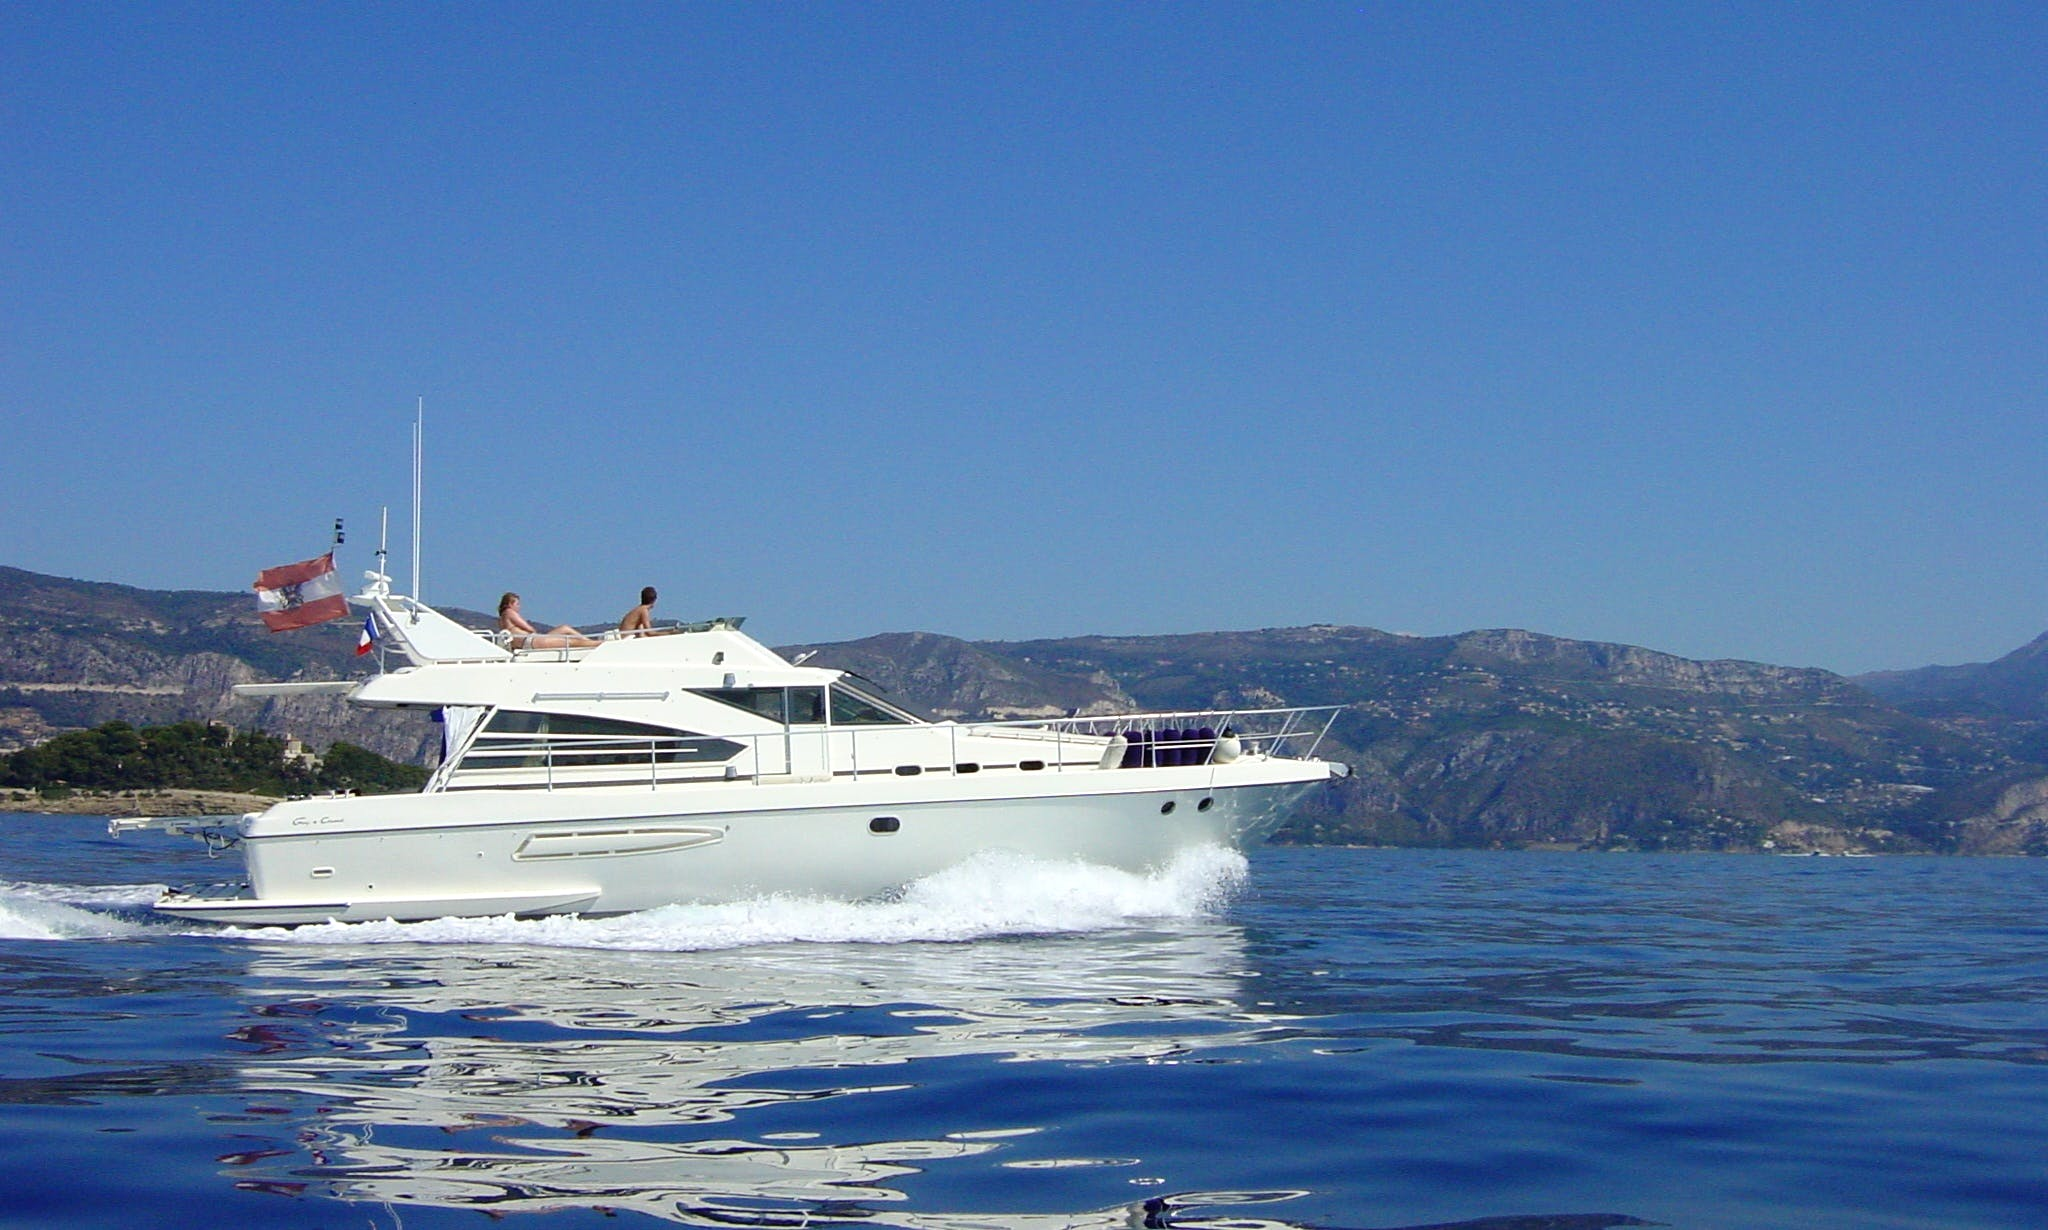 Motor Yacht rental in Menton, France for sleep aboard